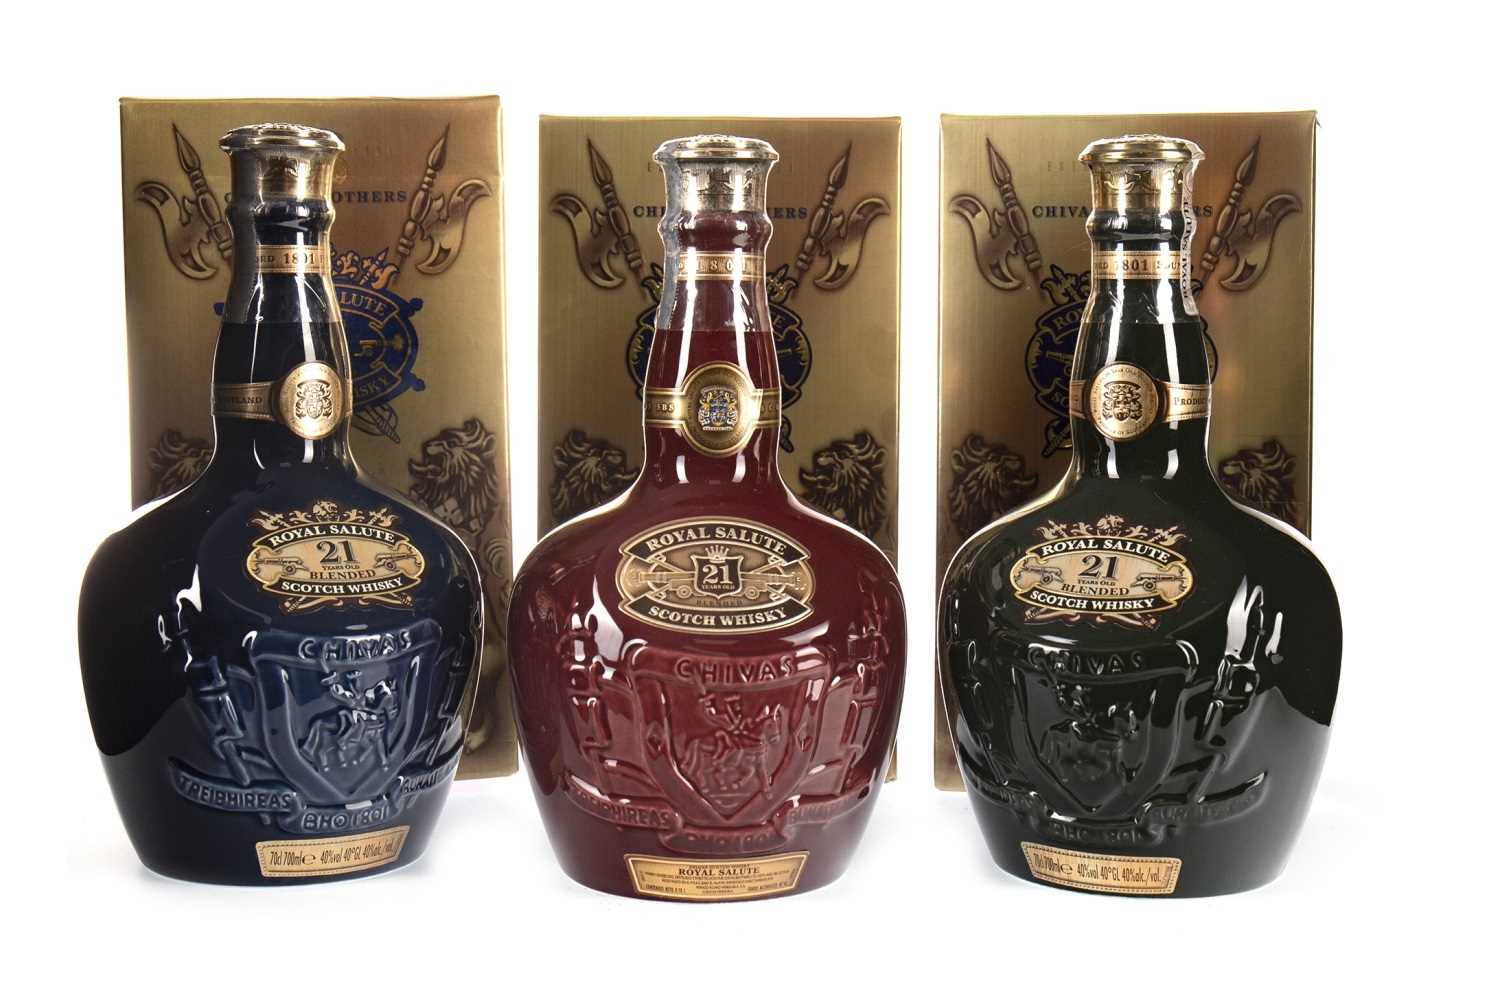 Lot 416-CHIVAS REGAL ROYAL SALUTE 21 YEARS OLD RUBY, EMERALD & SAPPHIRE FLAGONS